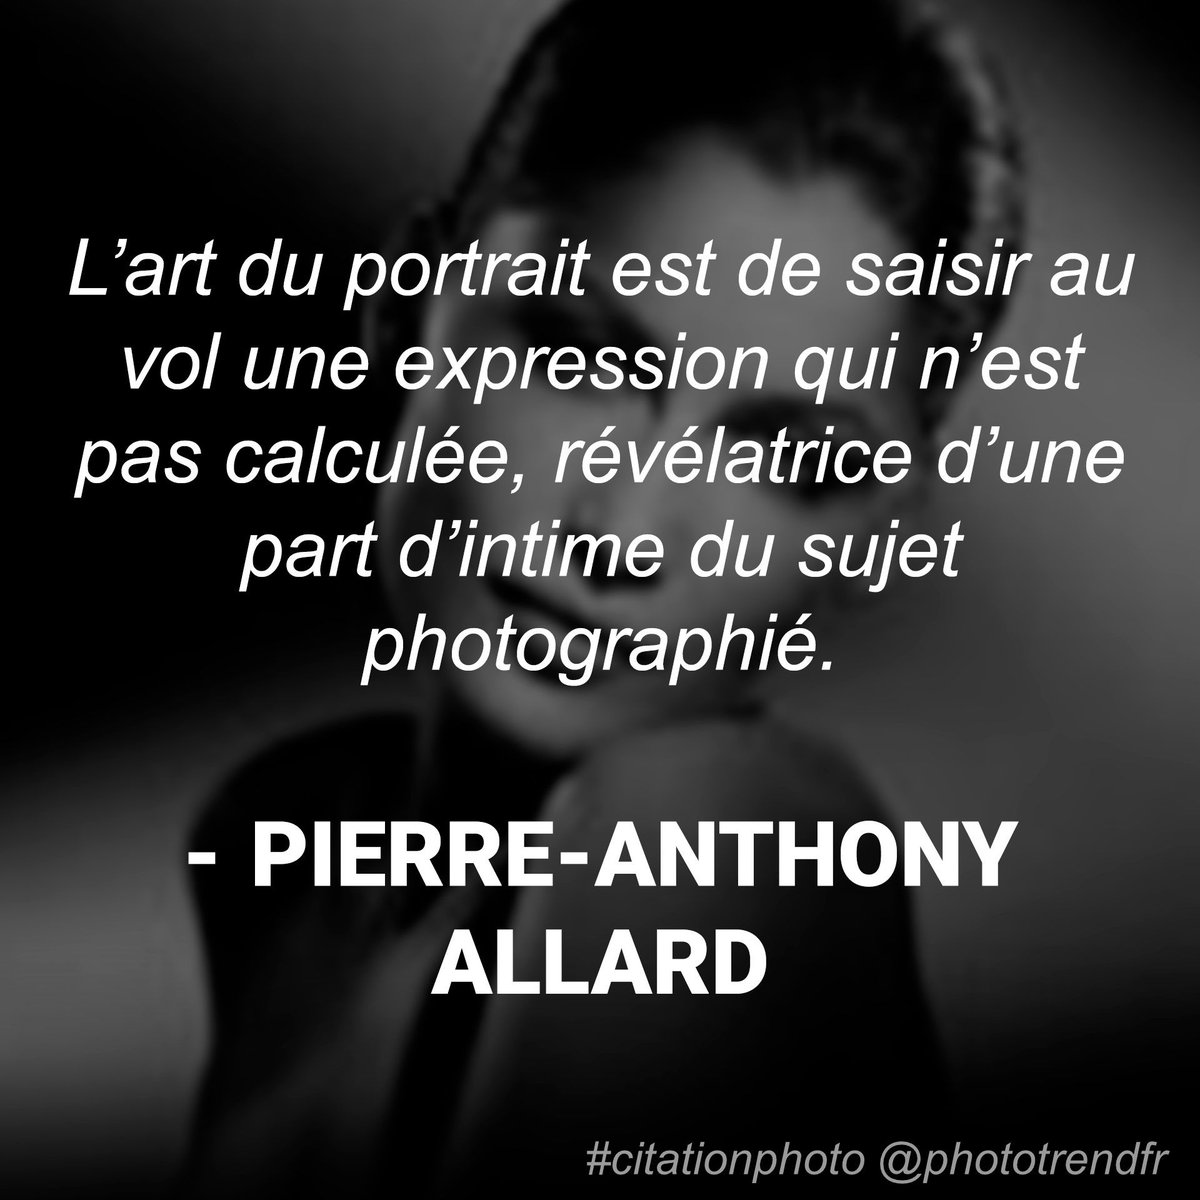 Phototrend On Twitter Voici La Citation Photo De La